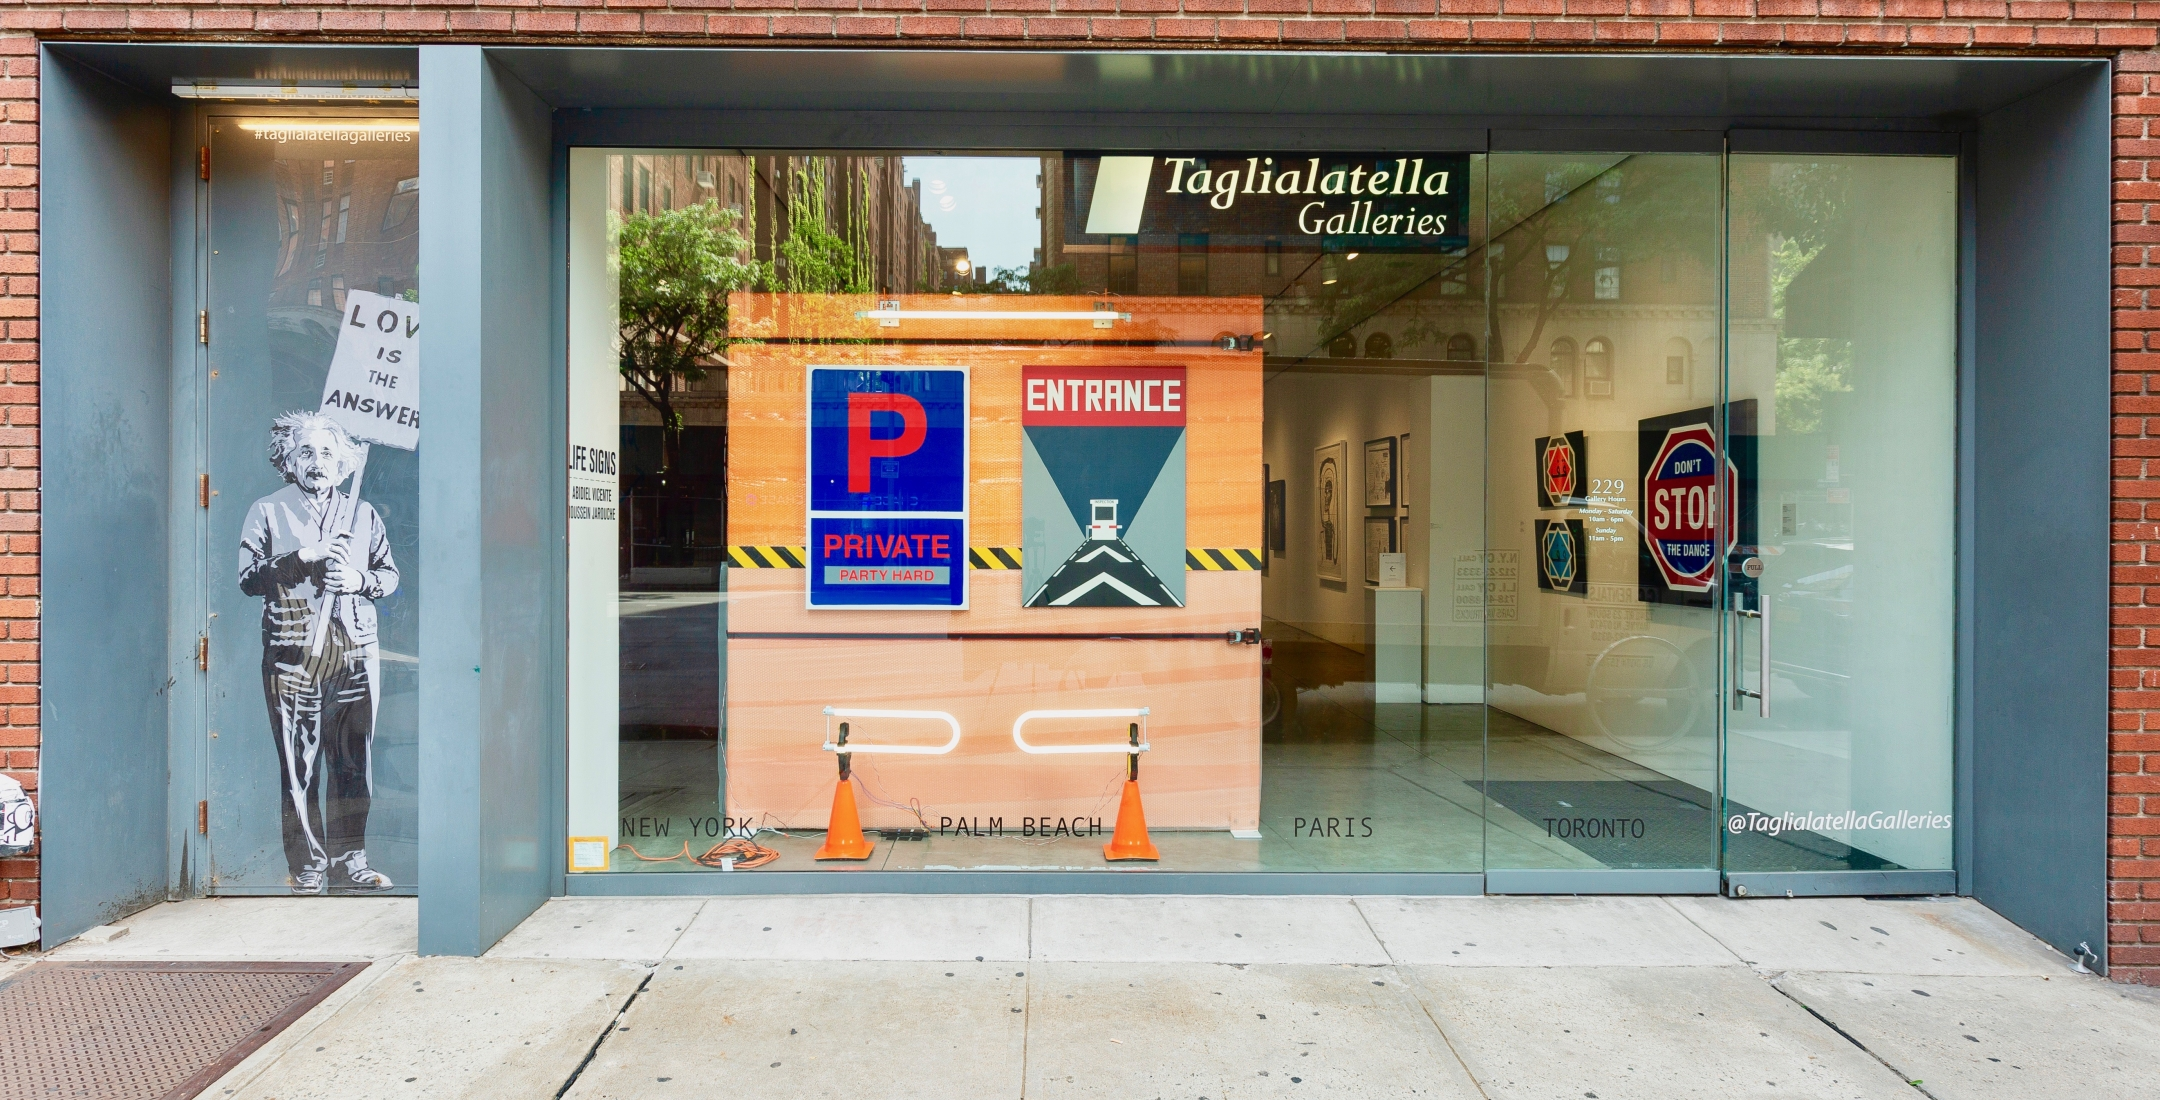 TAGLIALATELLA GALLERIES, New York